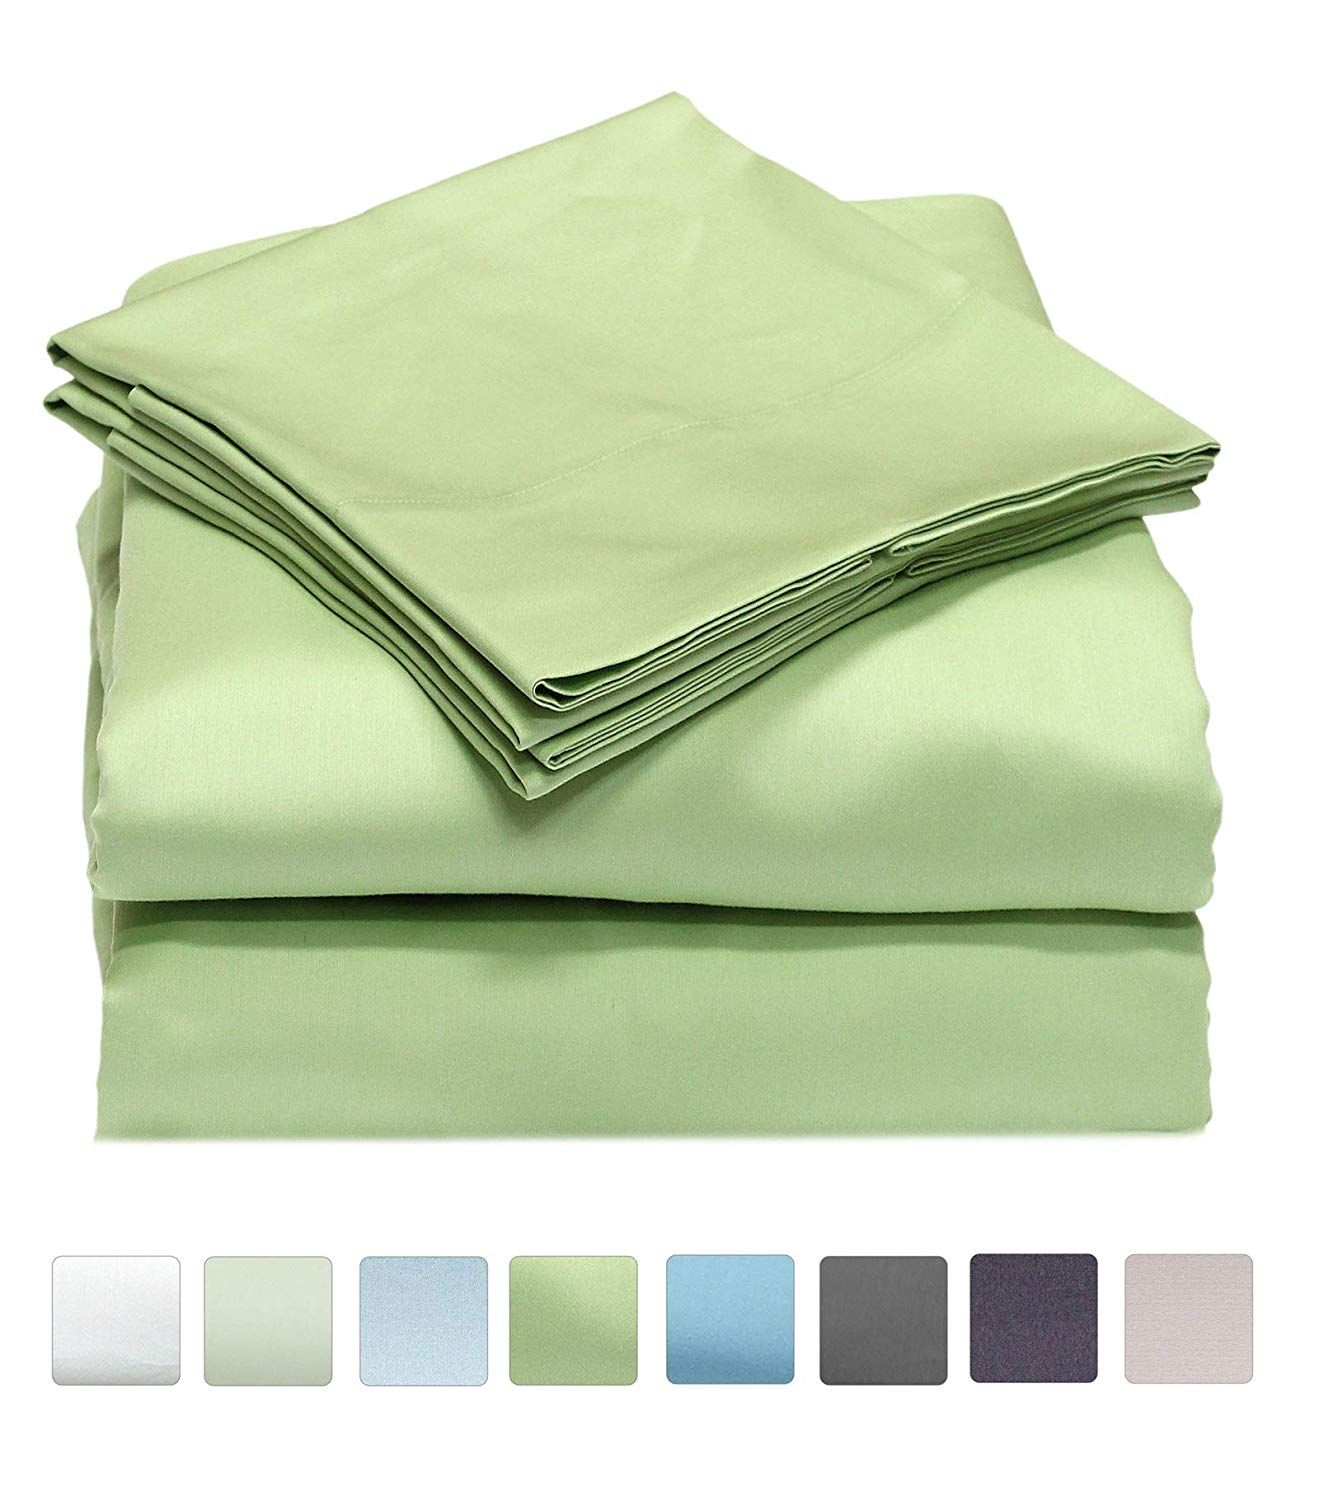 Callista King Size Sheet Set Luxury Cotton Extra Soft Sateen